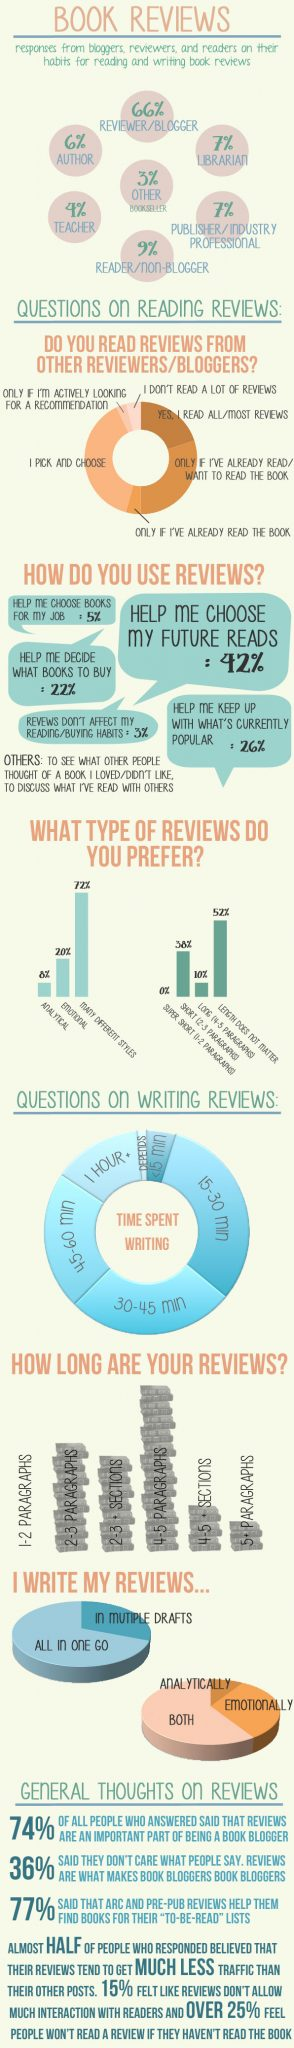 Book Blogger Reviews Survey Infographic